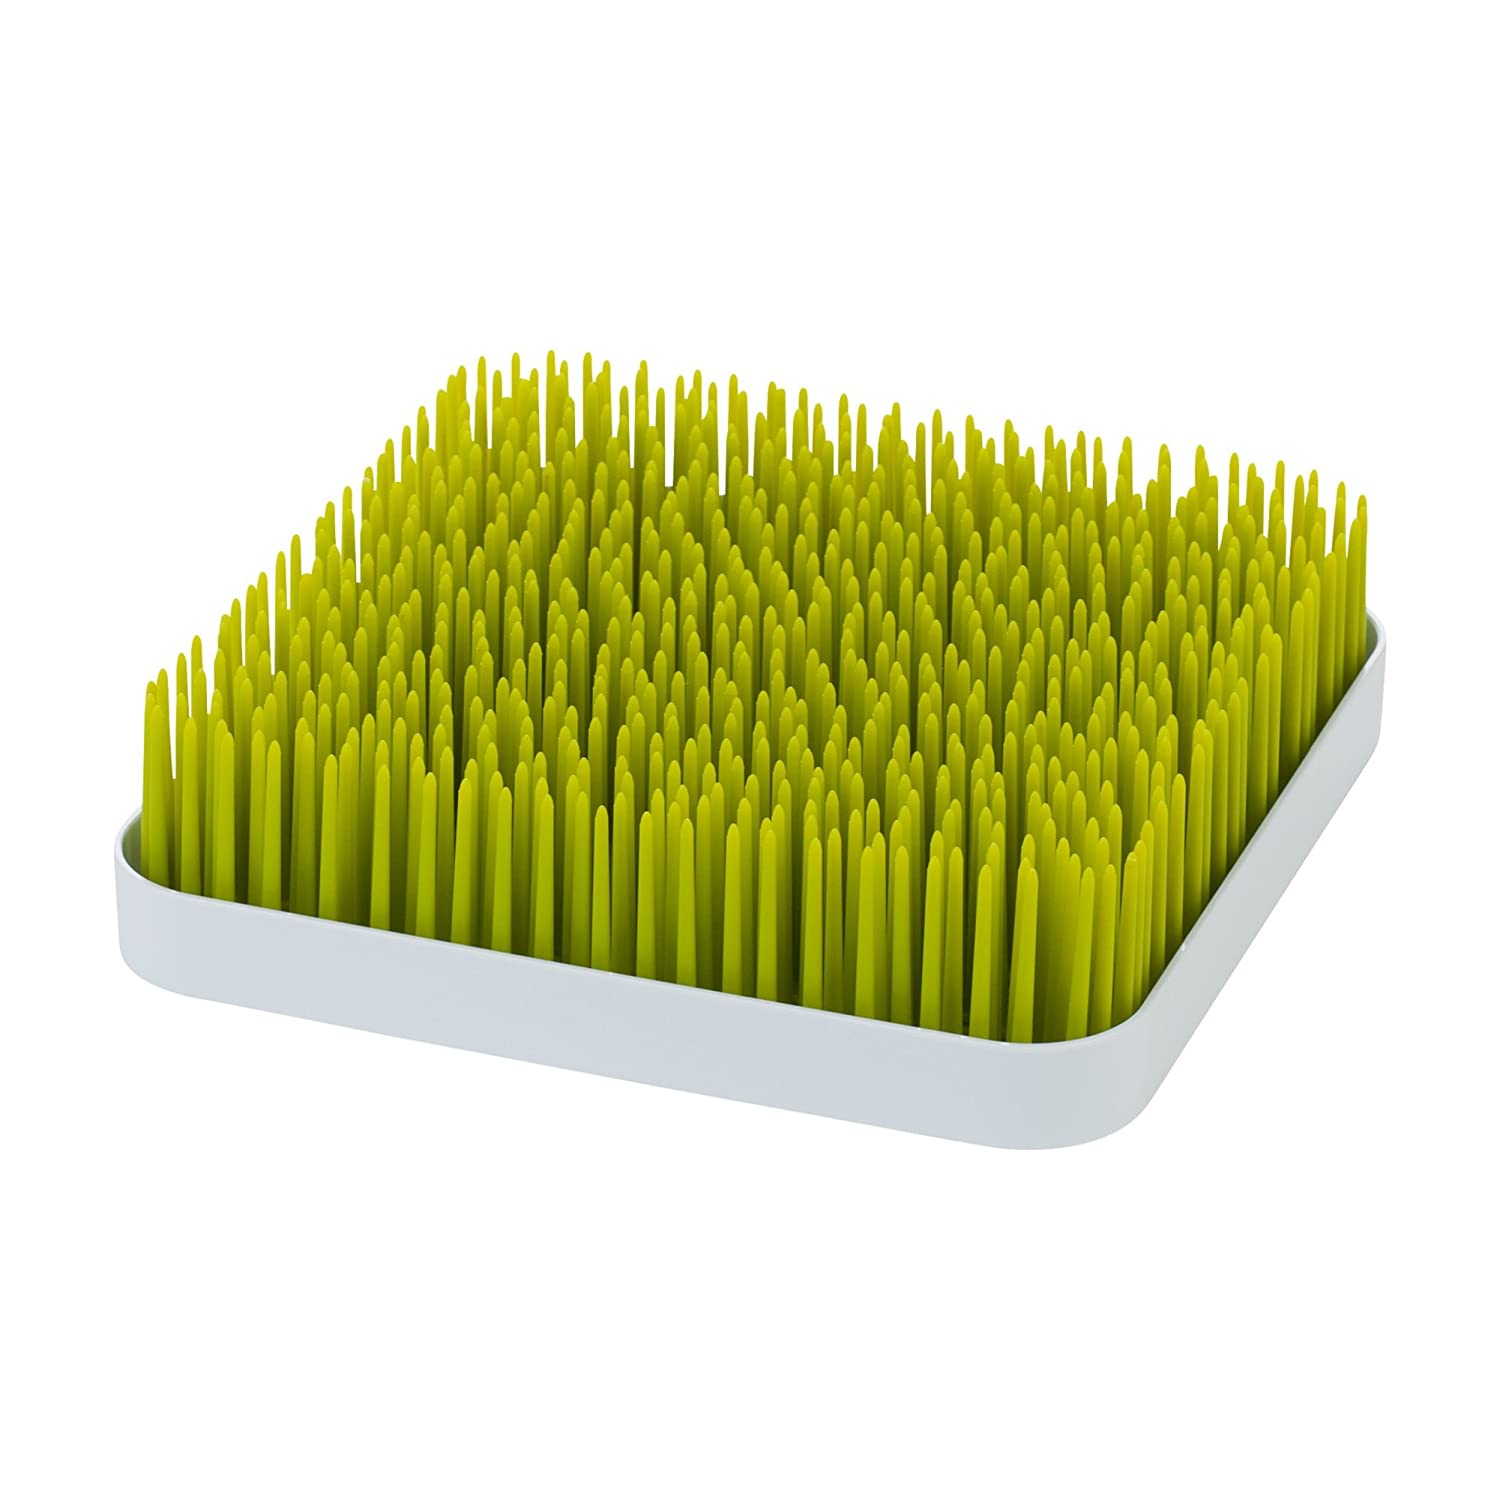 Boon GRASS Drying Rack, Green Claude Simon TOMY B373